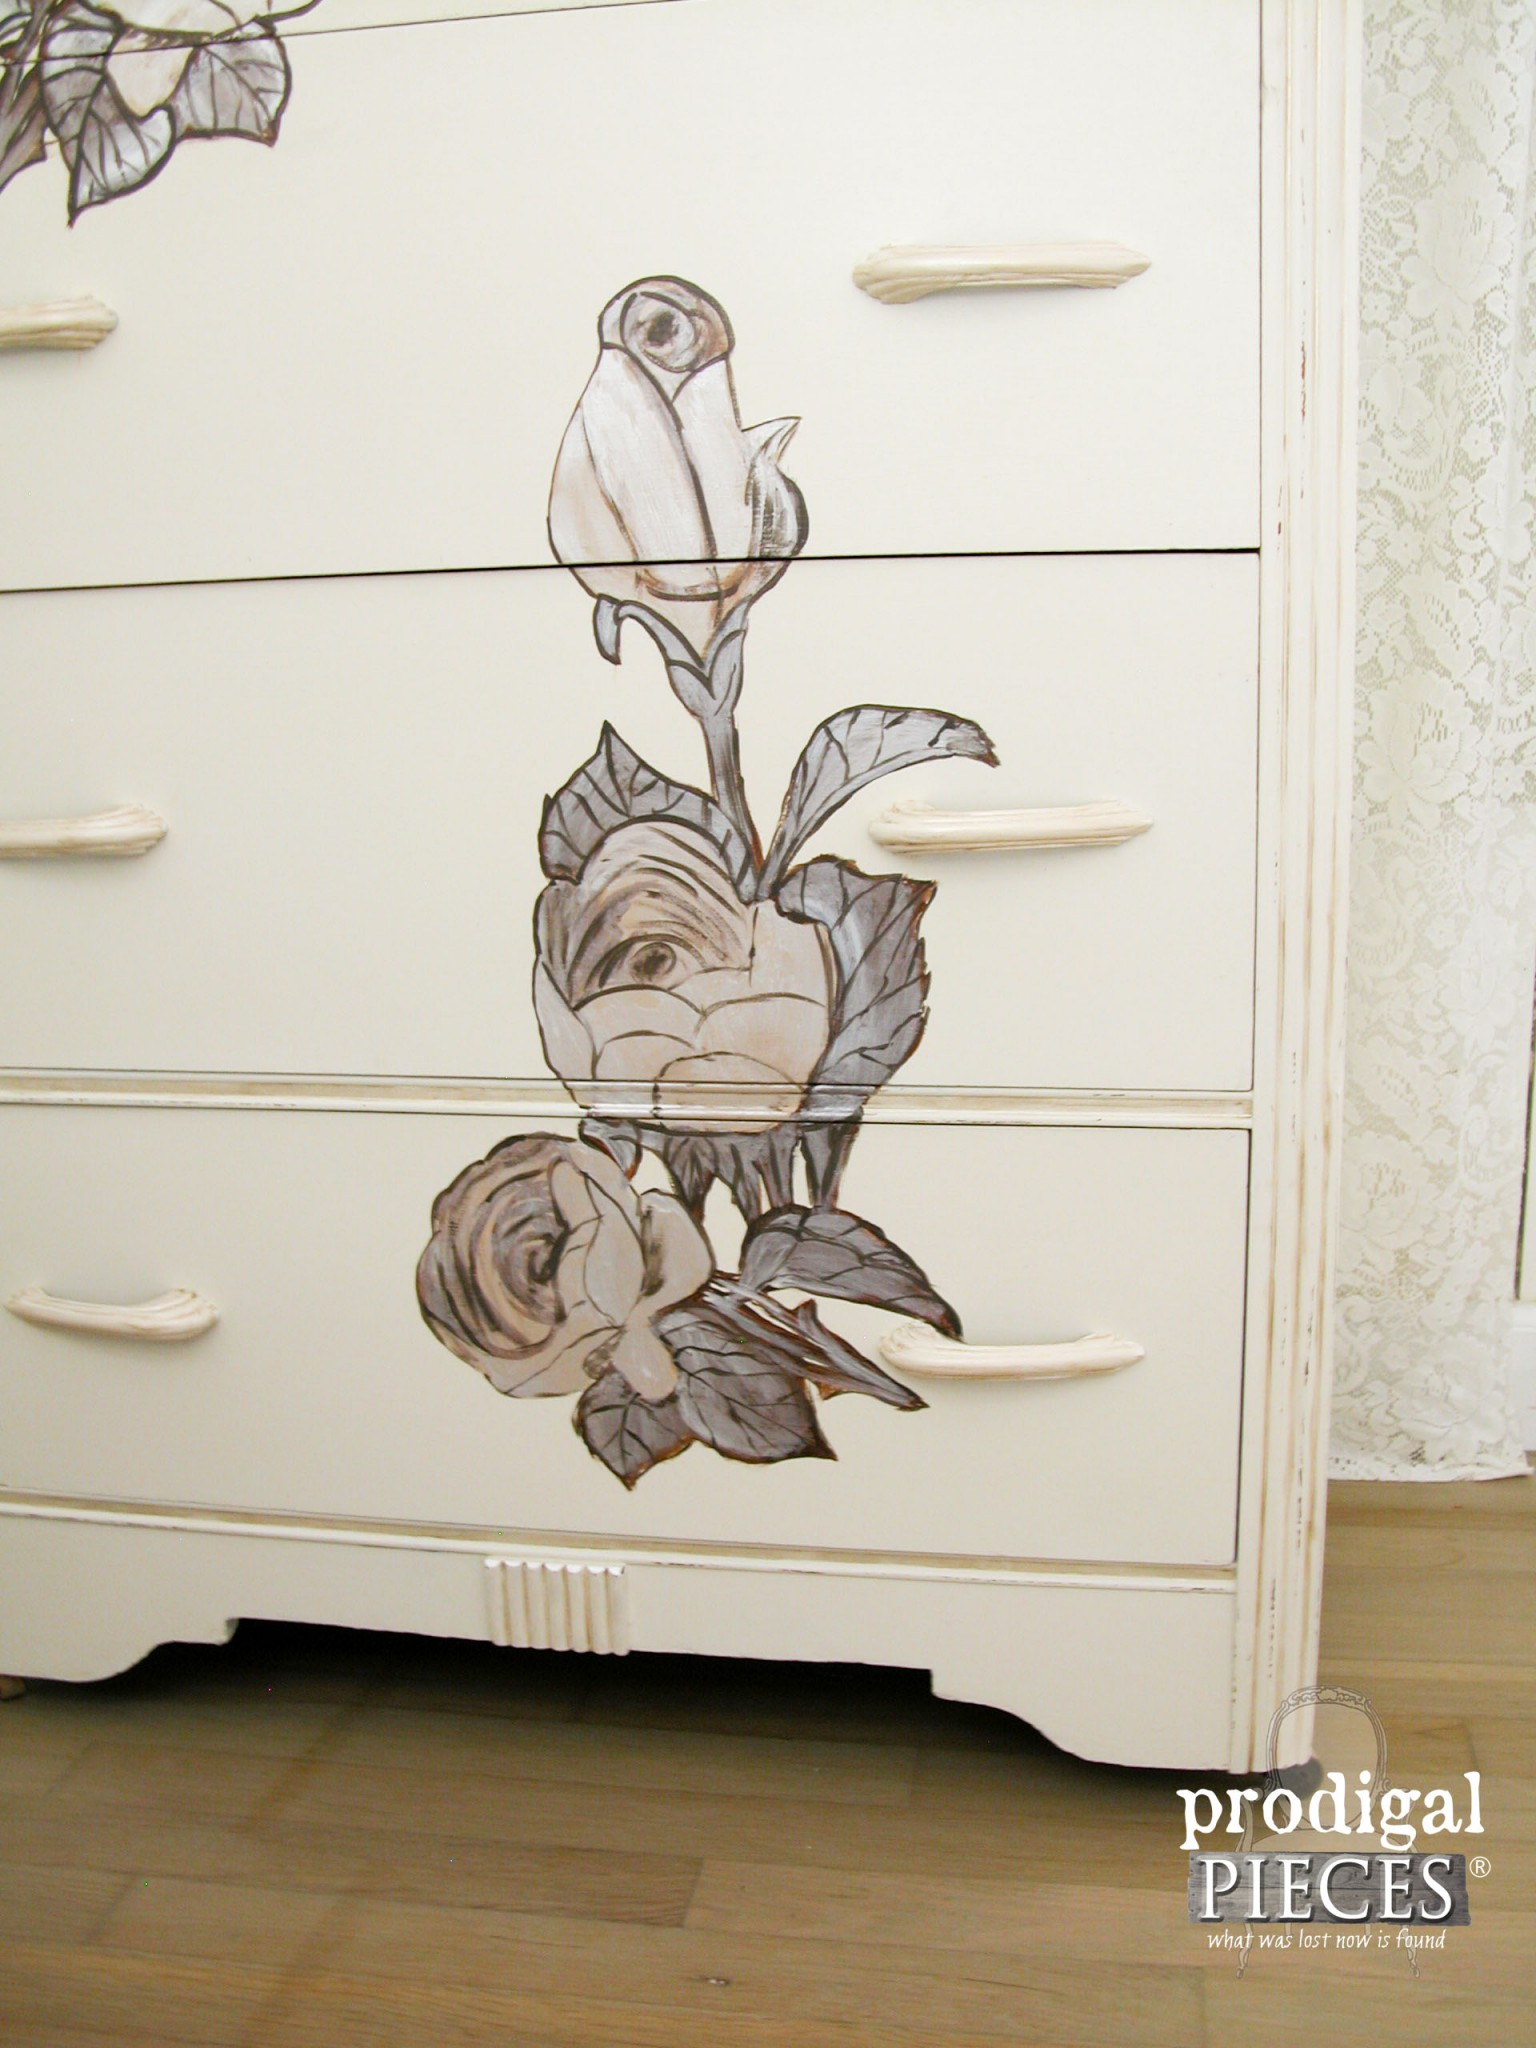 Shabby Chic Roses added to Art Deco Chest by Prodigal Pieces | www.prodigalpieces.com